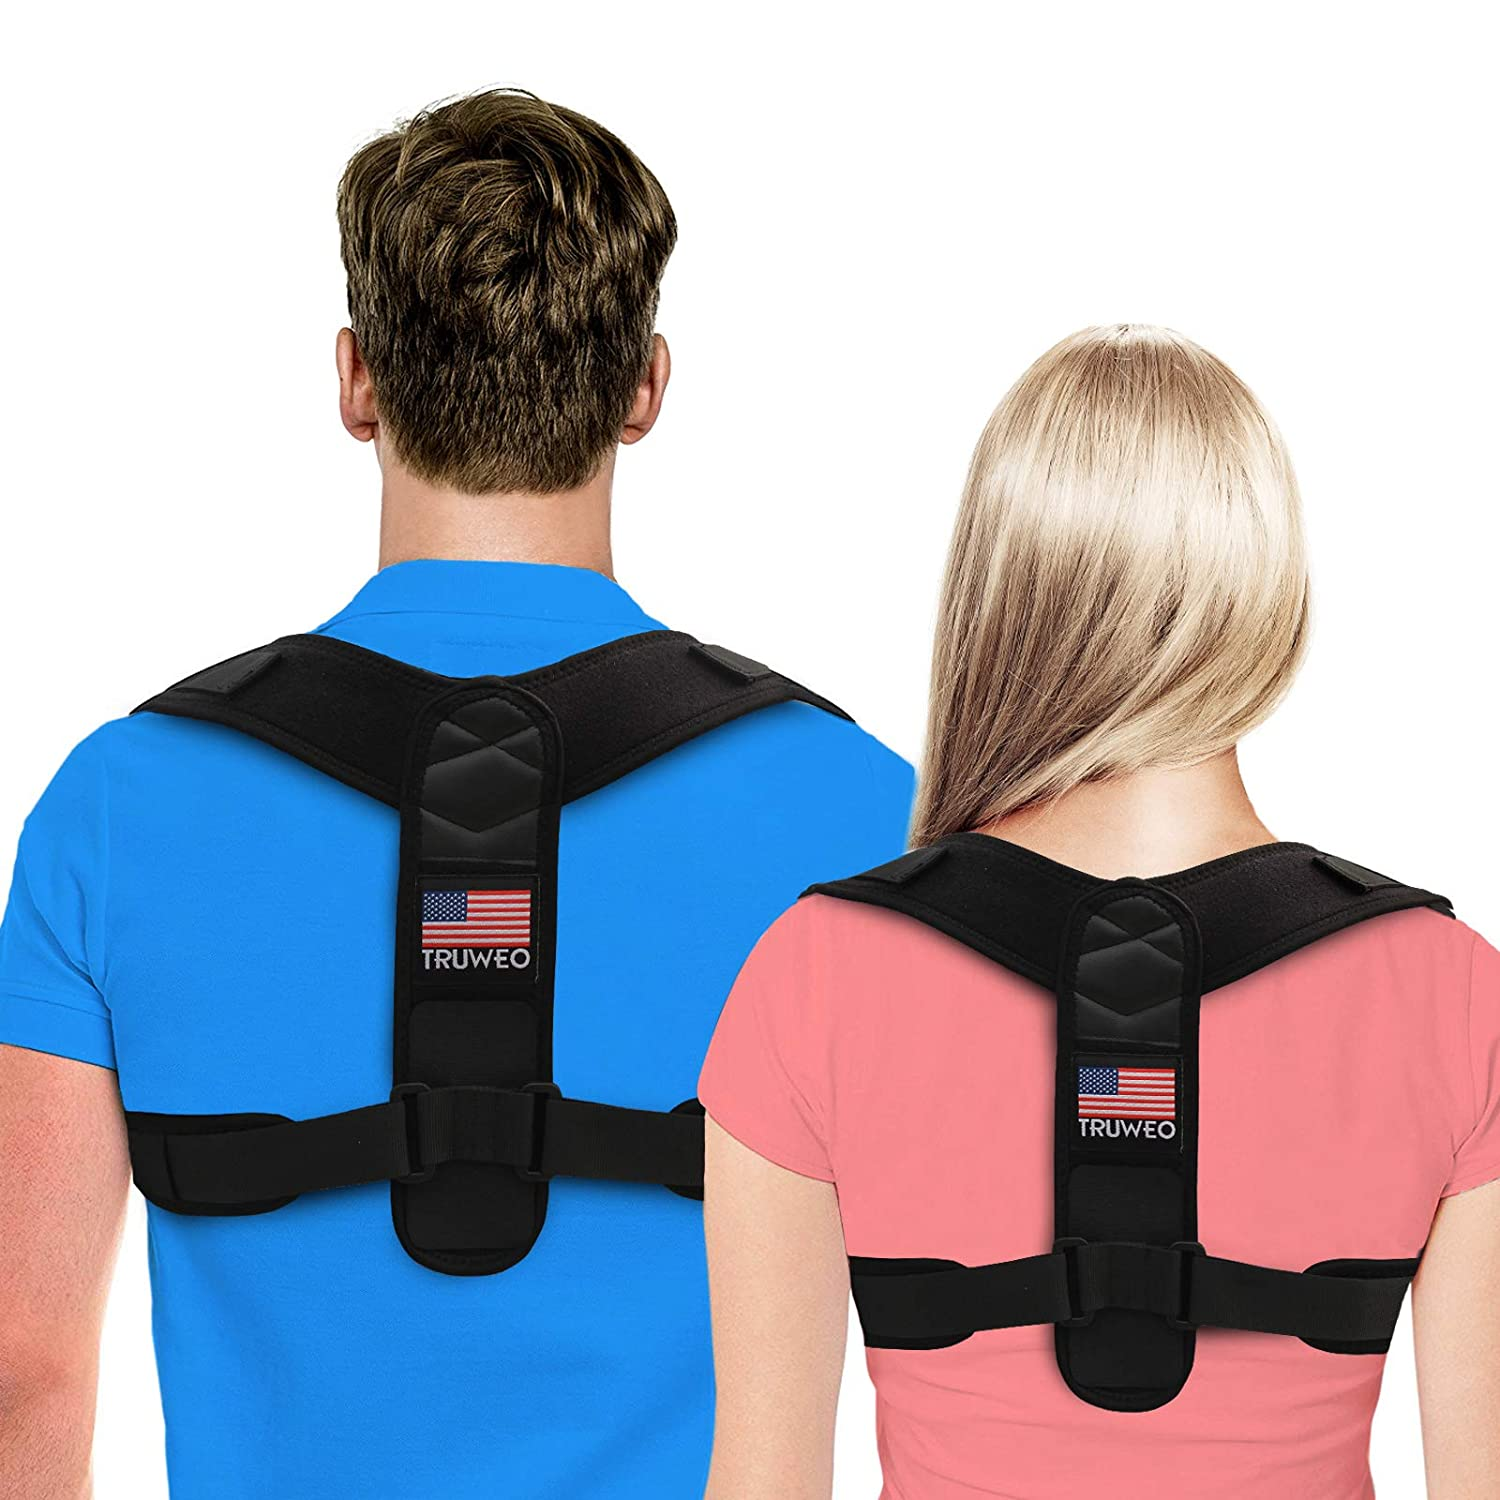 Sports Medicine Adult Inflatable Back Posture Corrector Lumbar Fixed Correction Upper & Lower Back Brace Support Belt Men Women Orthosis,L